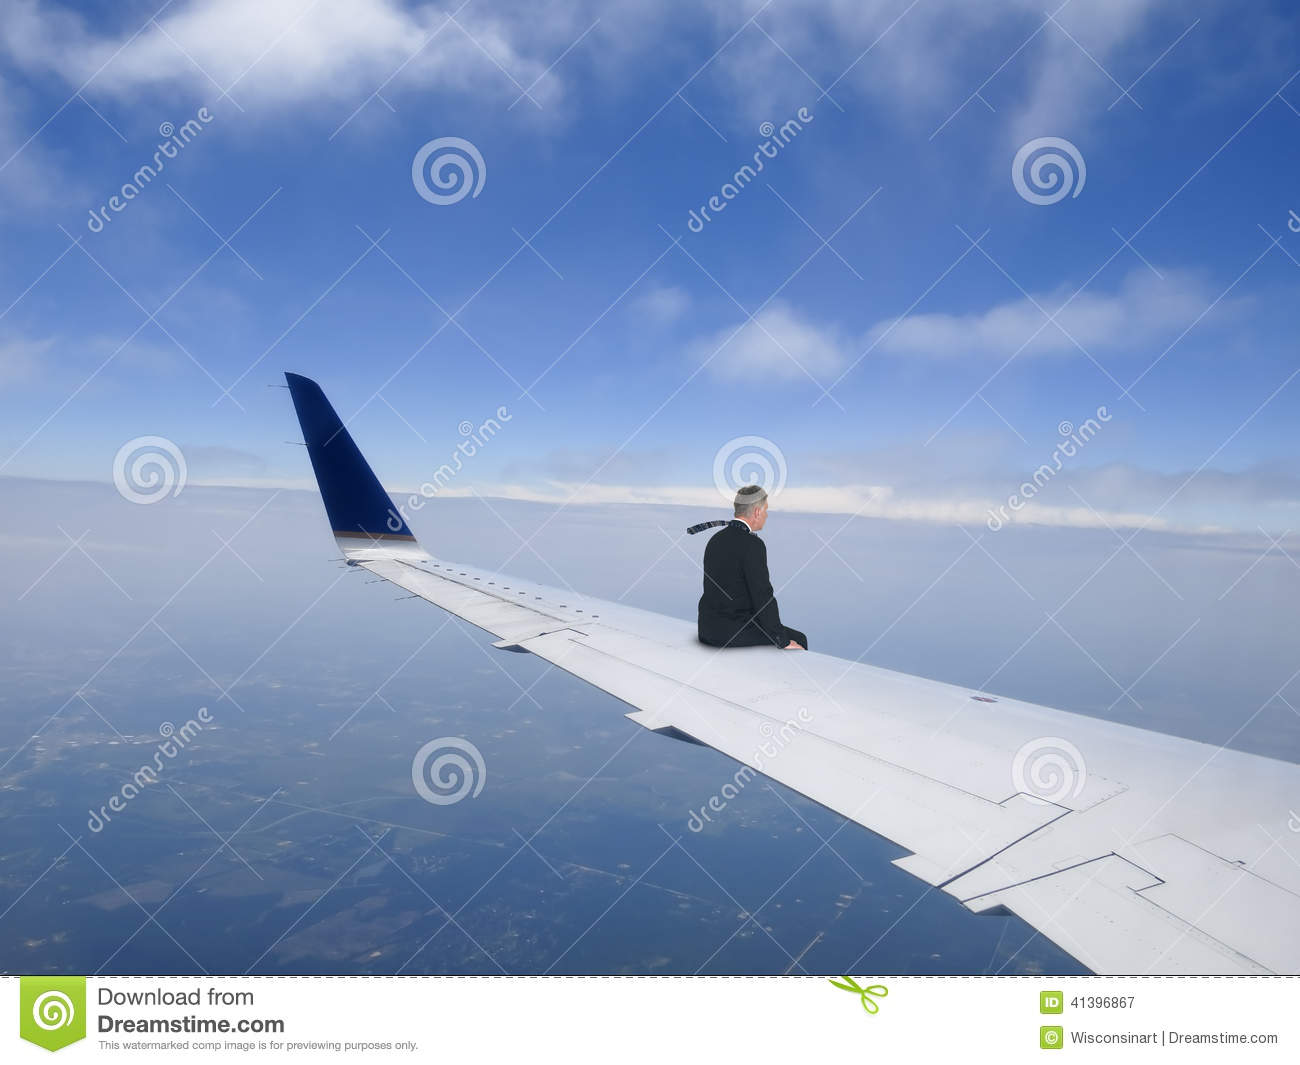 Business Travel Concept, Businessman Flying on Jet